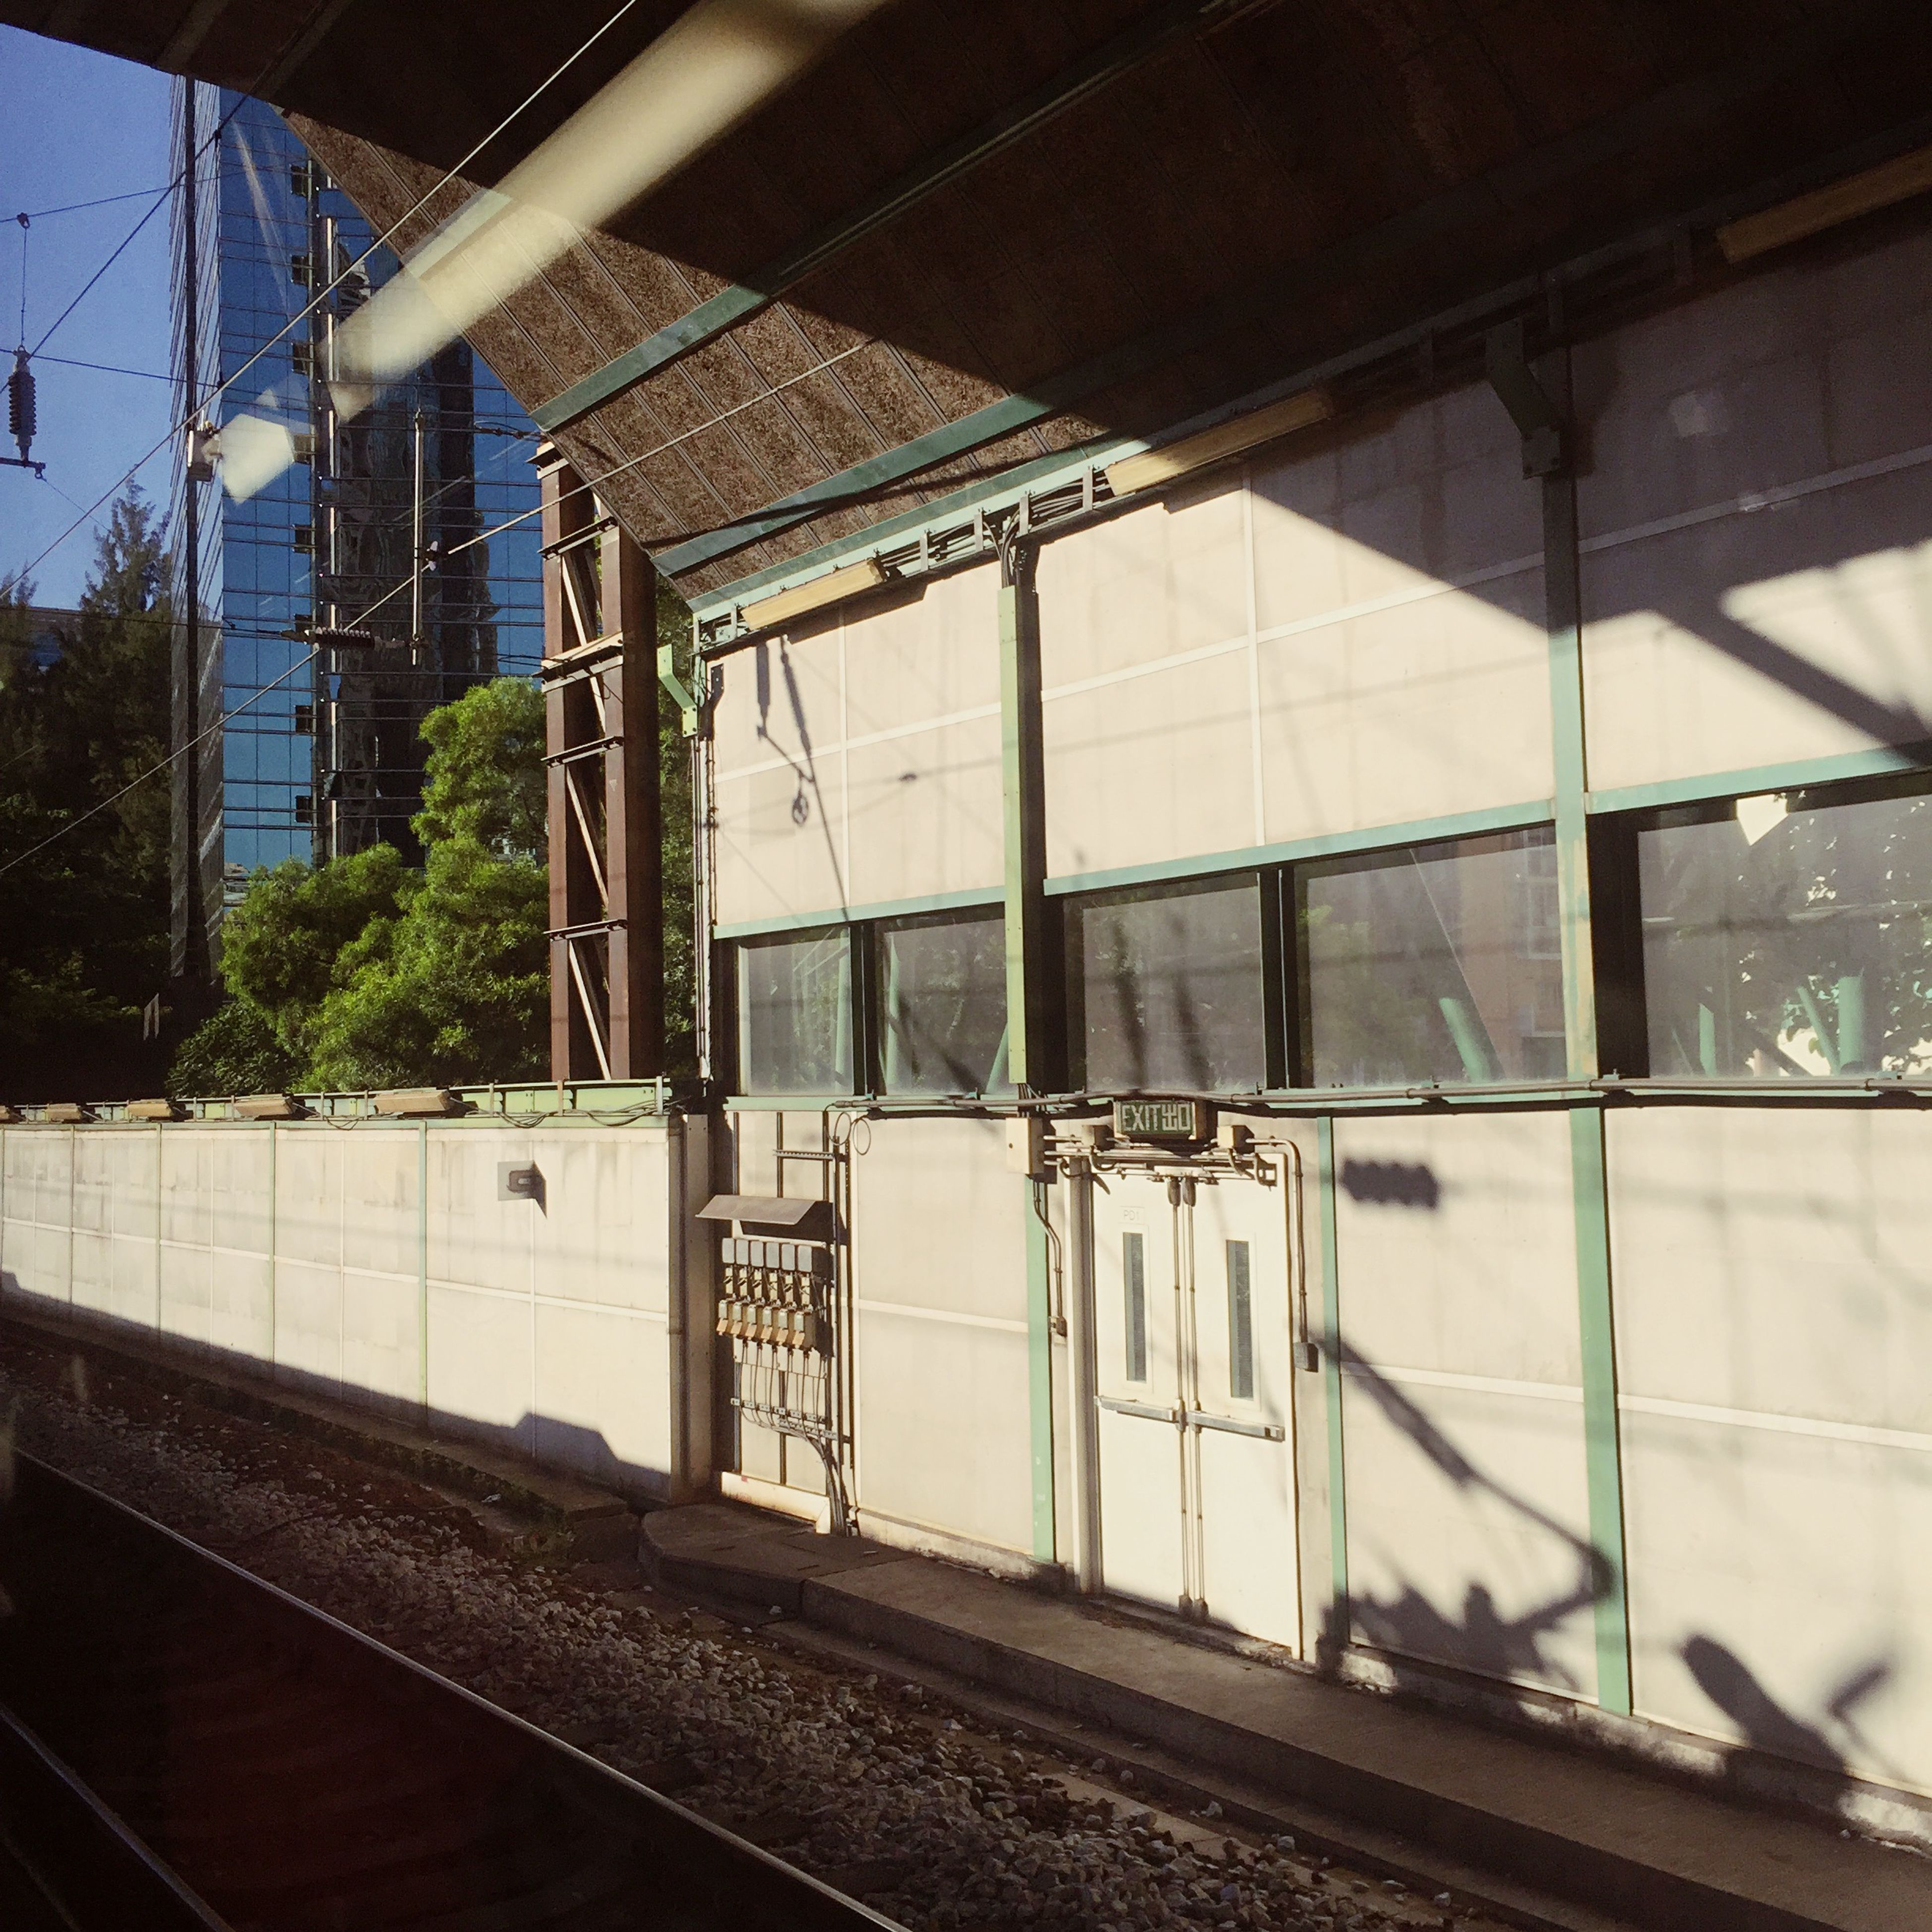 railroad track, rail transportation, public transportation, transportation, railroad station platform, built structure, architecture, railroad station, train - vehicle, indoors, building exterior, glass - material, window, train, day, no people, mode of transport, transparent, railway track, passenger train